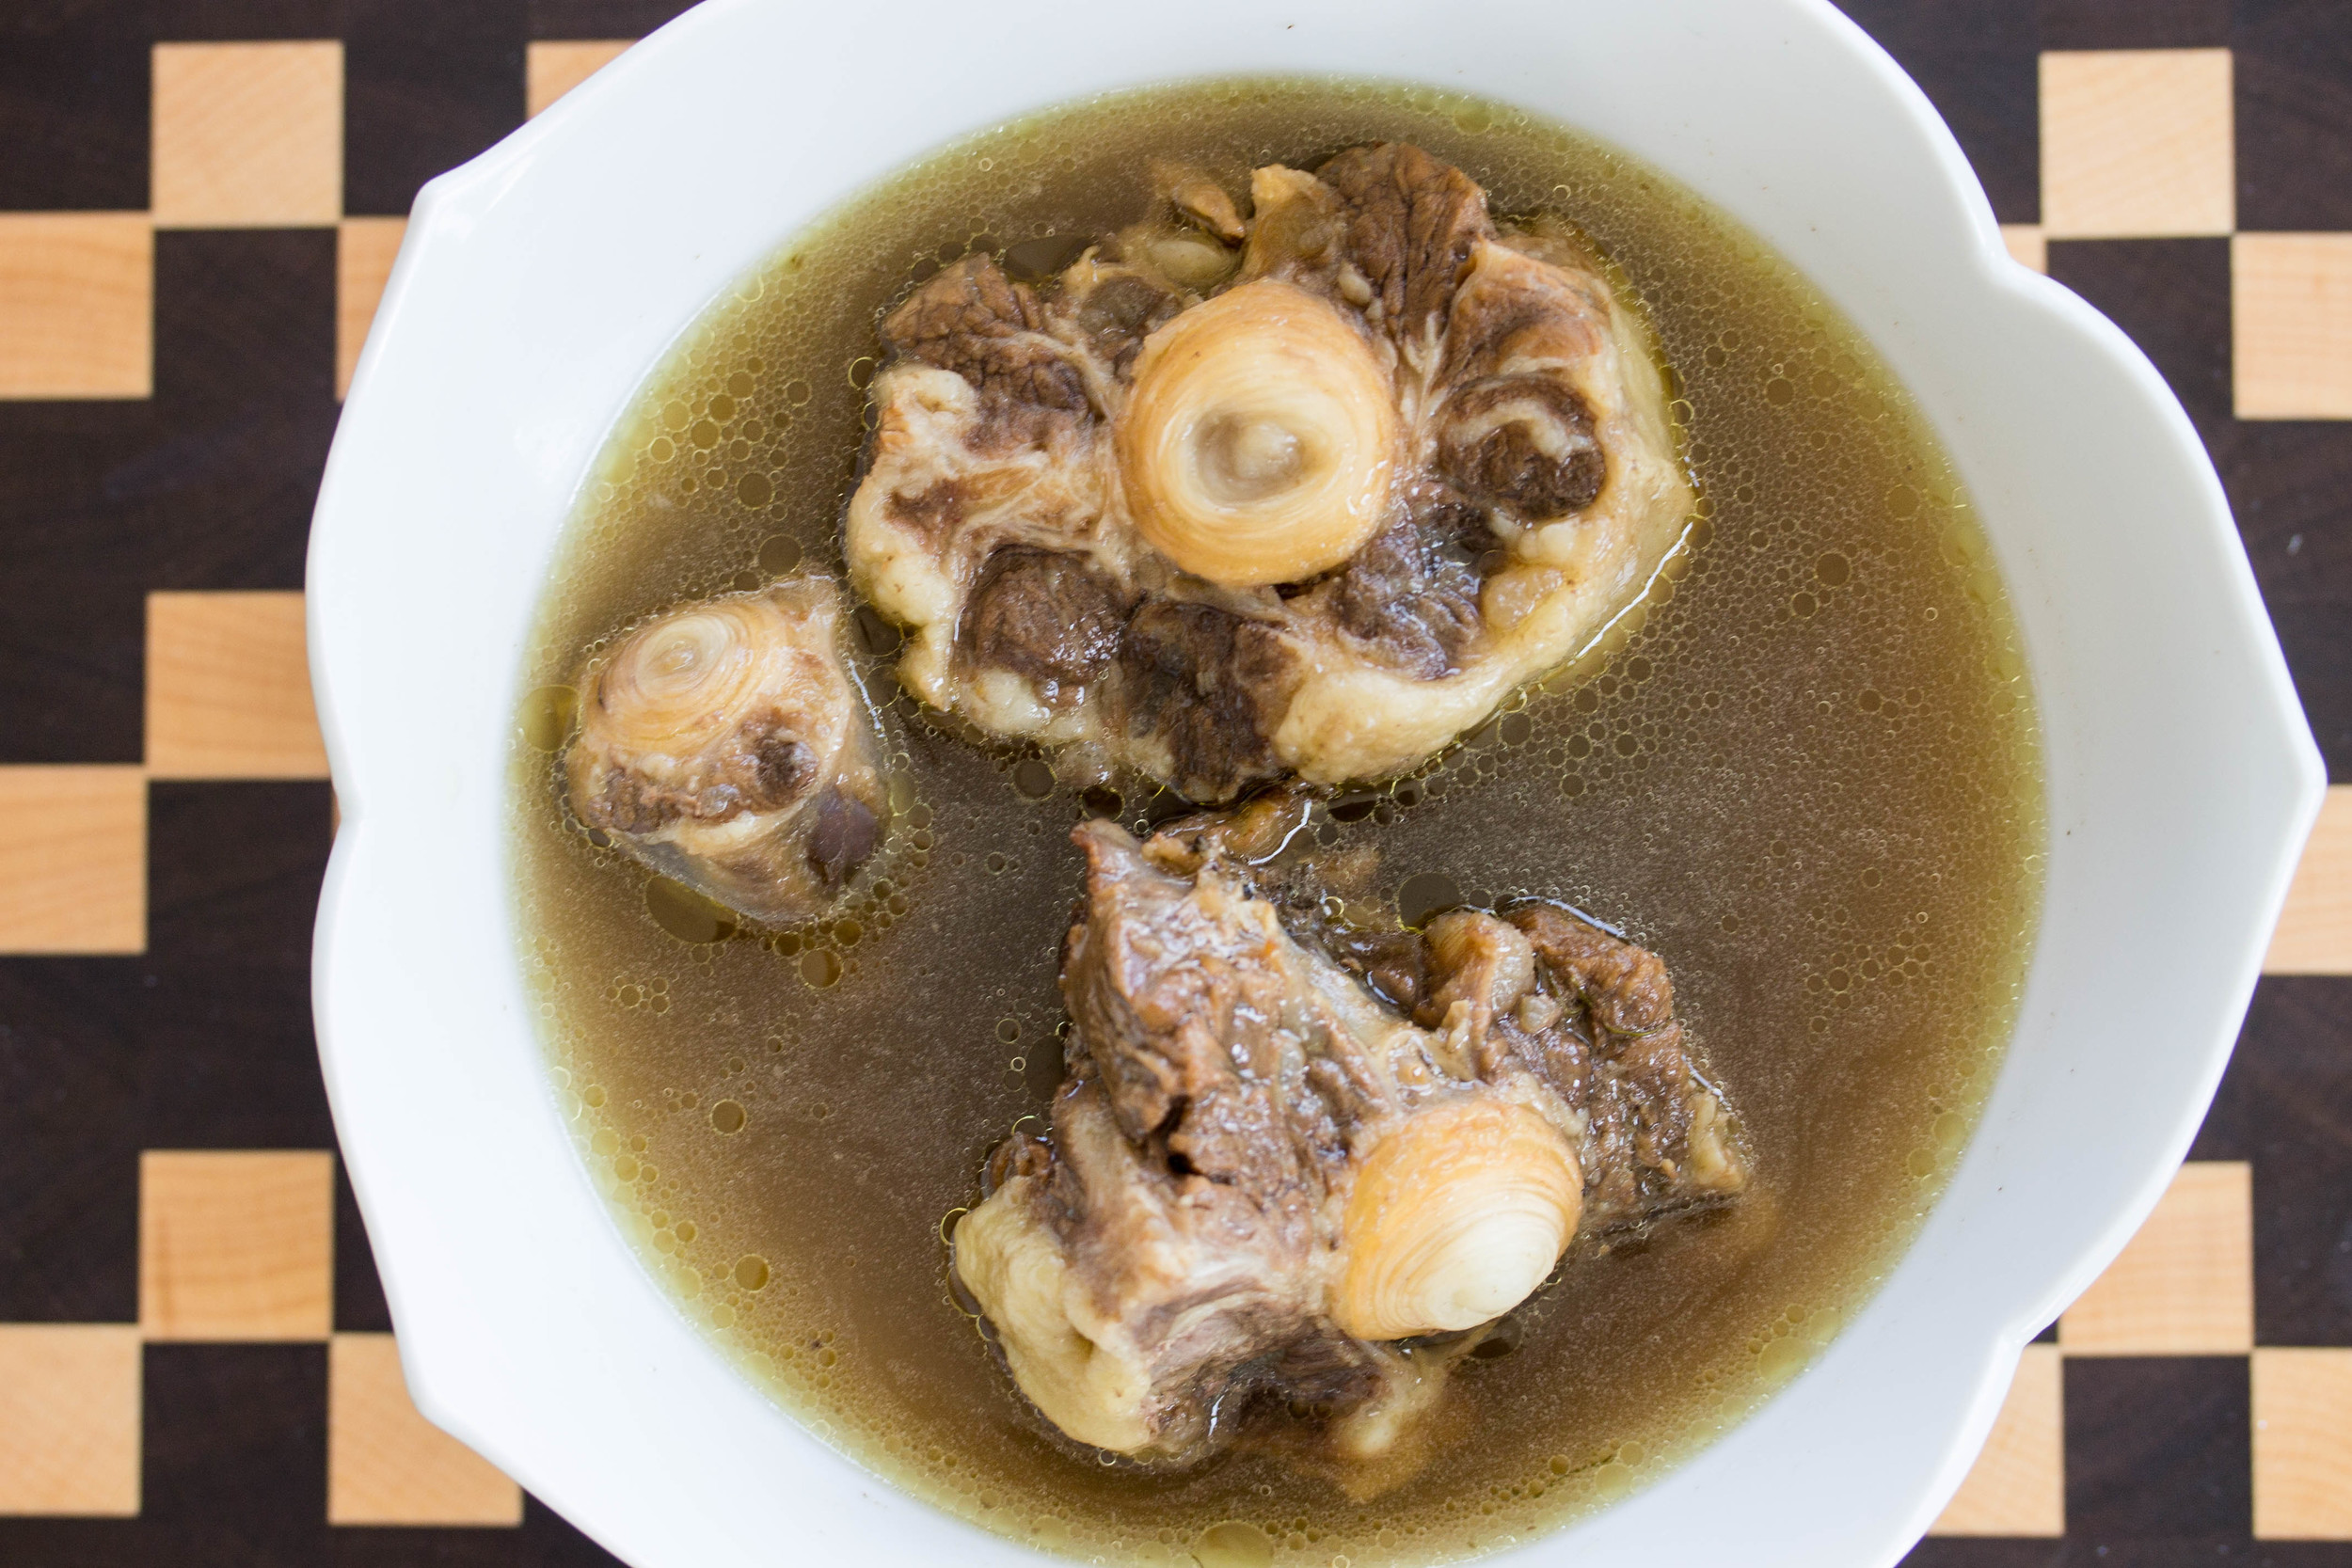 Strain broth into bowl and serve with oxtail.